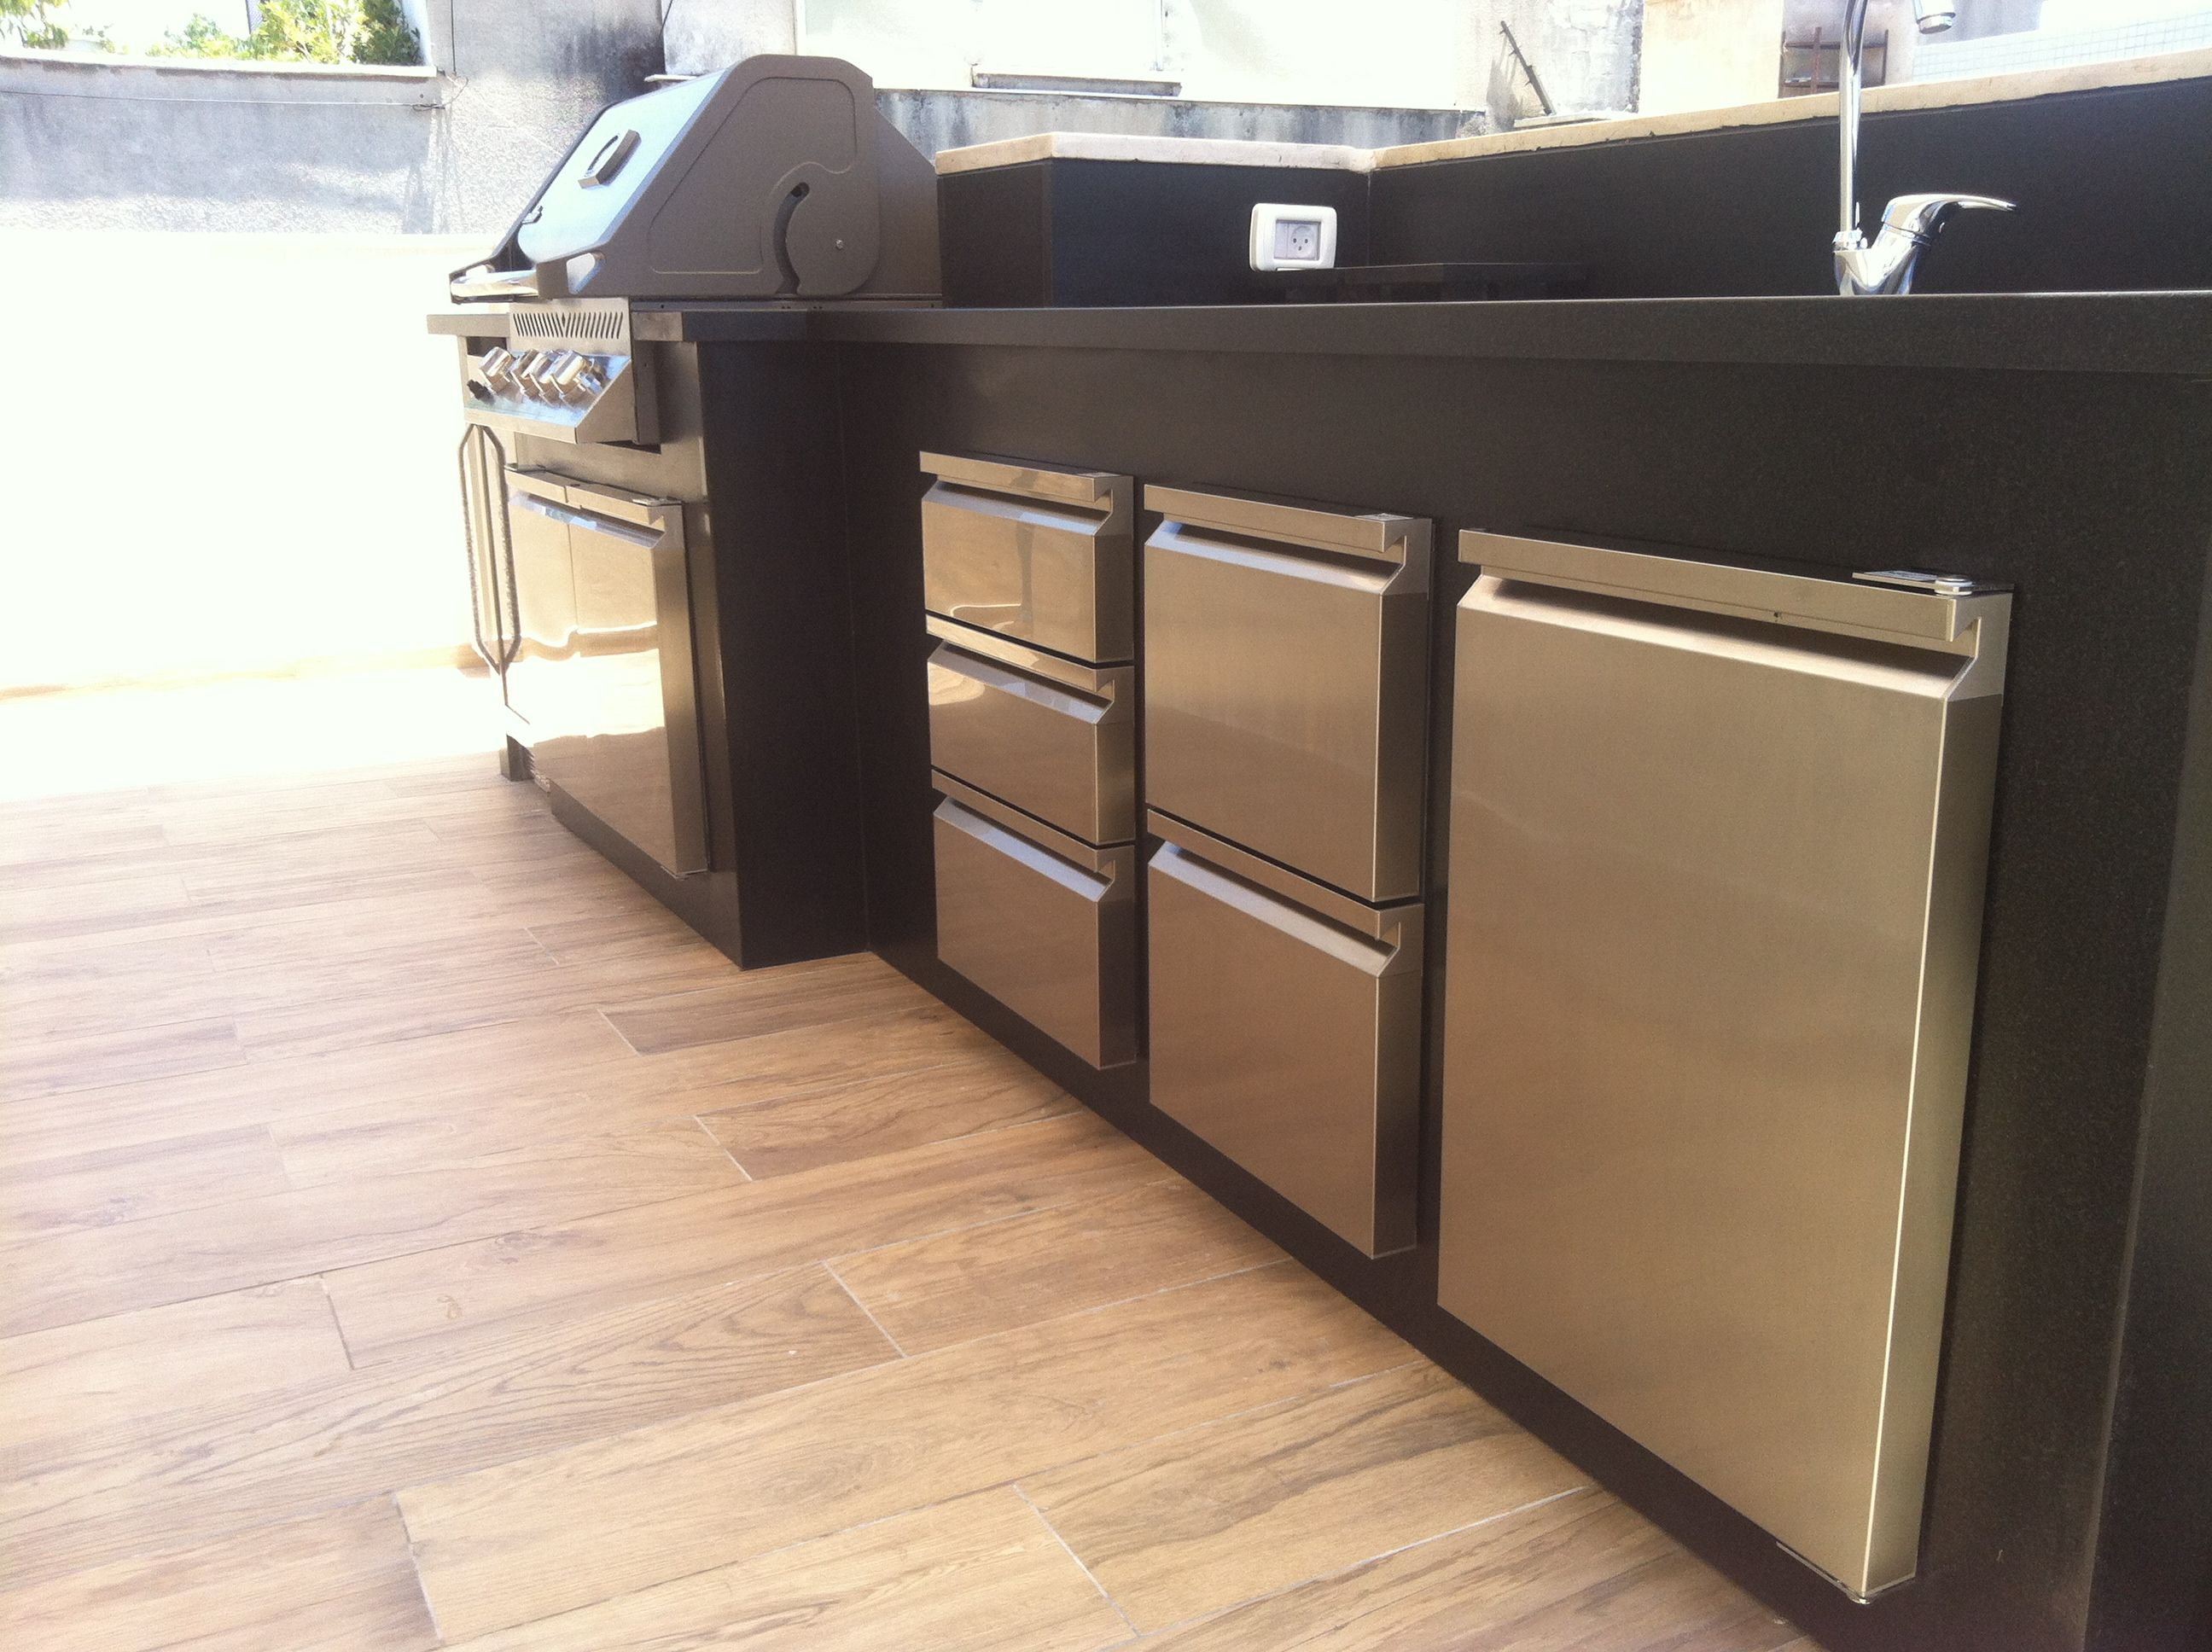 Ronda At Dream Garden Israel Stainless Steel Doors And Drawers Outdoor Kitchen